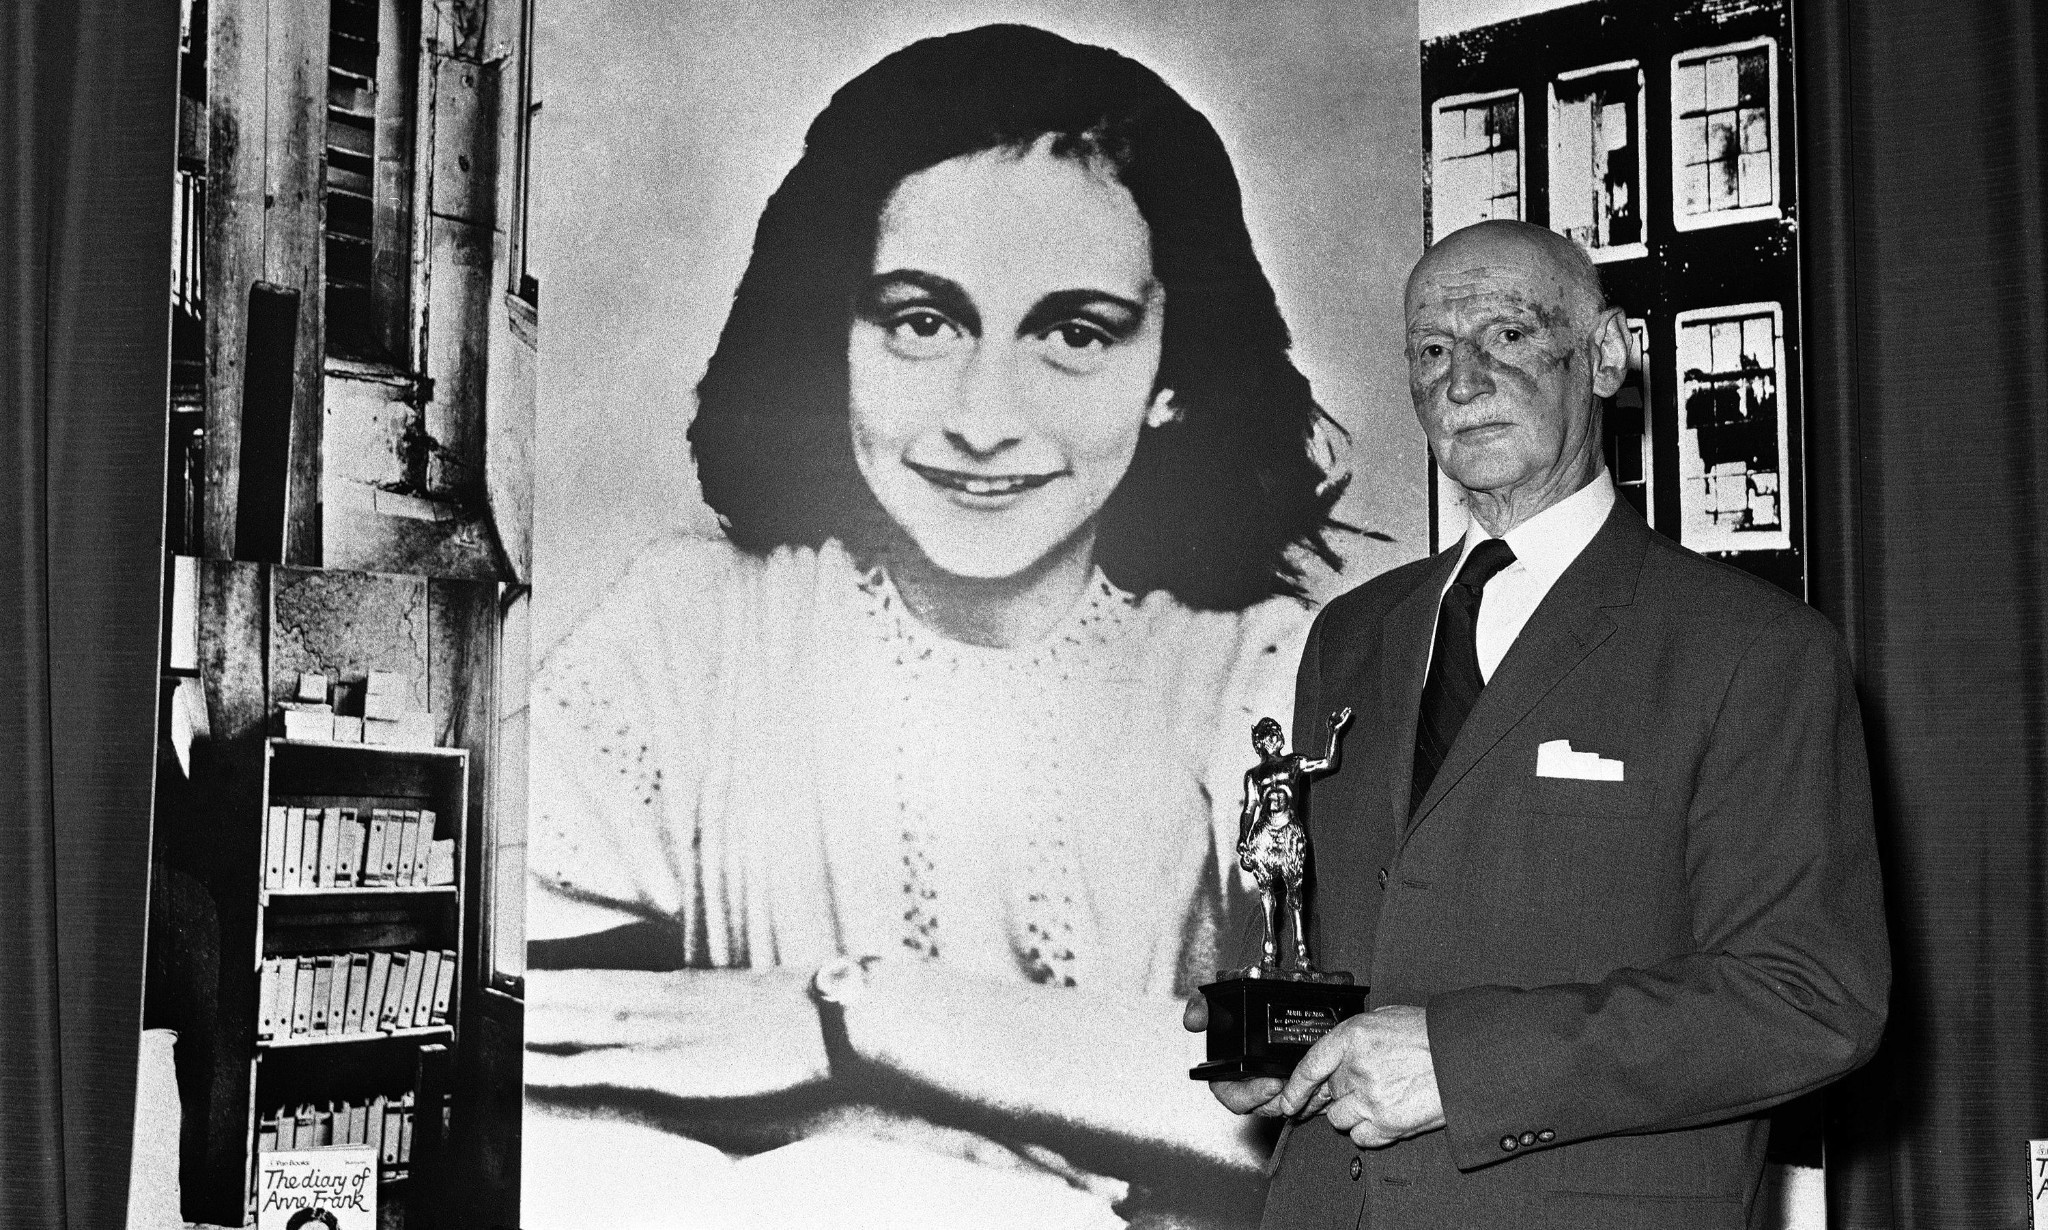 Anne Frank's diary caught in fierce European copyright battle